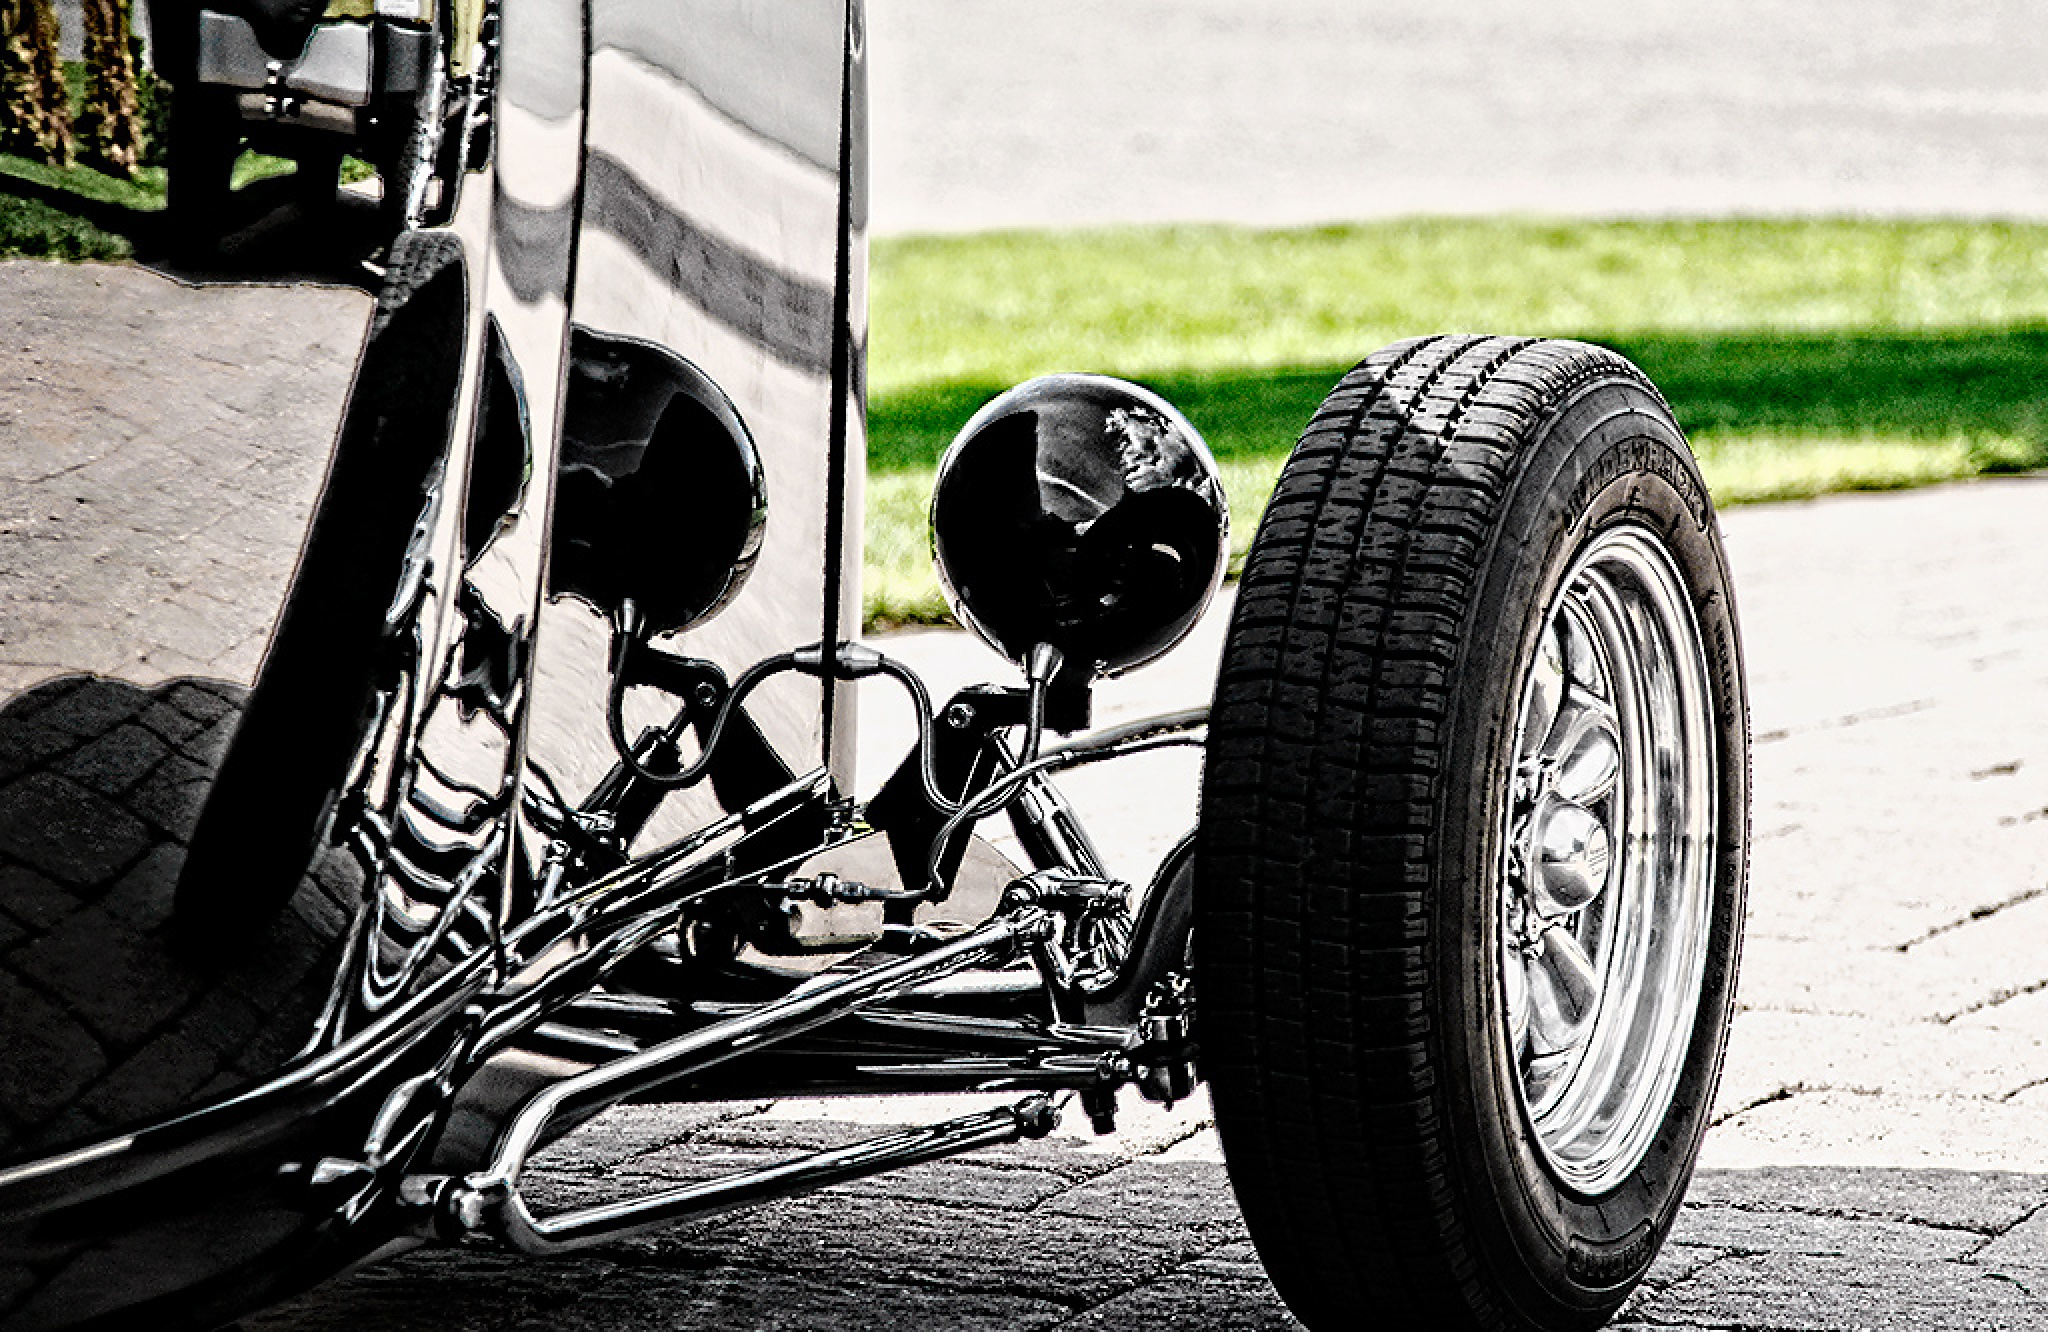 Little Deuce Coupe by GailHarmer